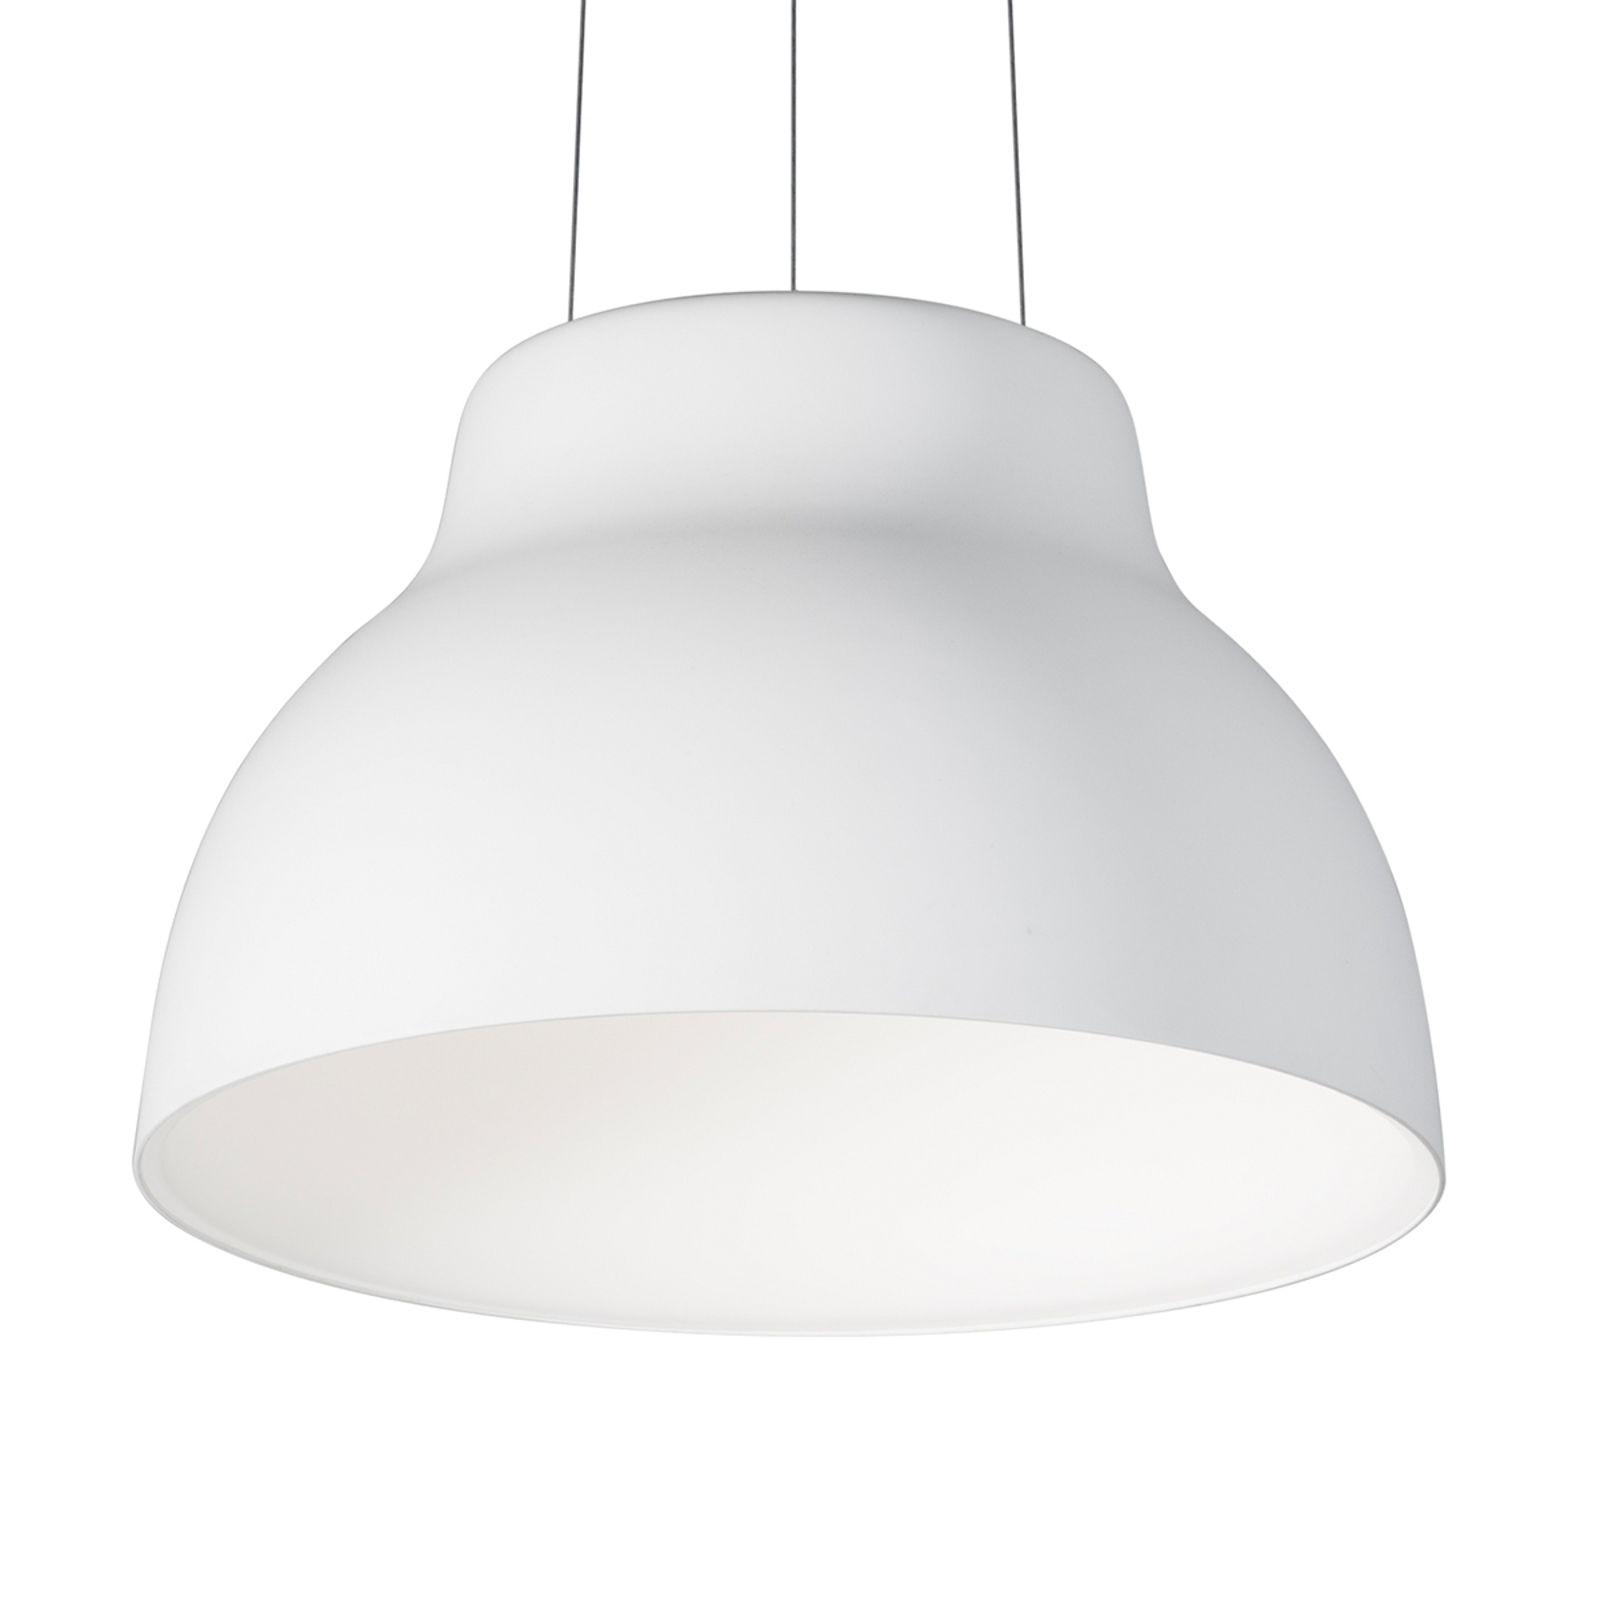 Martinelli Luce Cicala - suspension LED, blanche